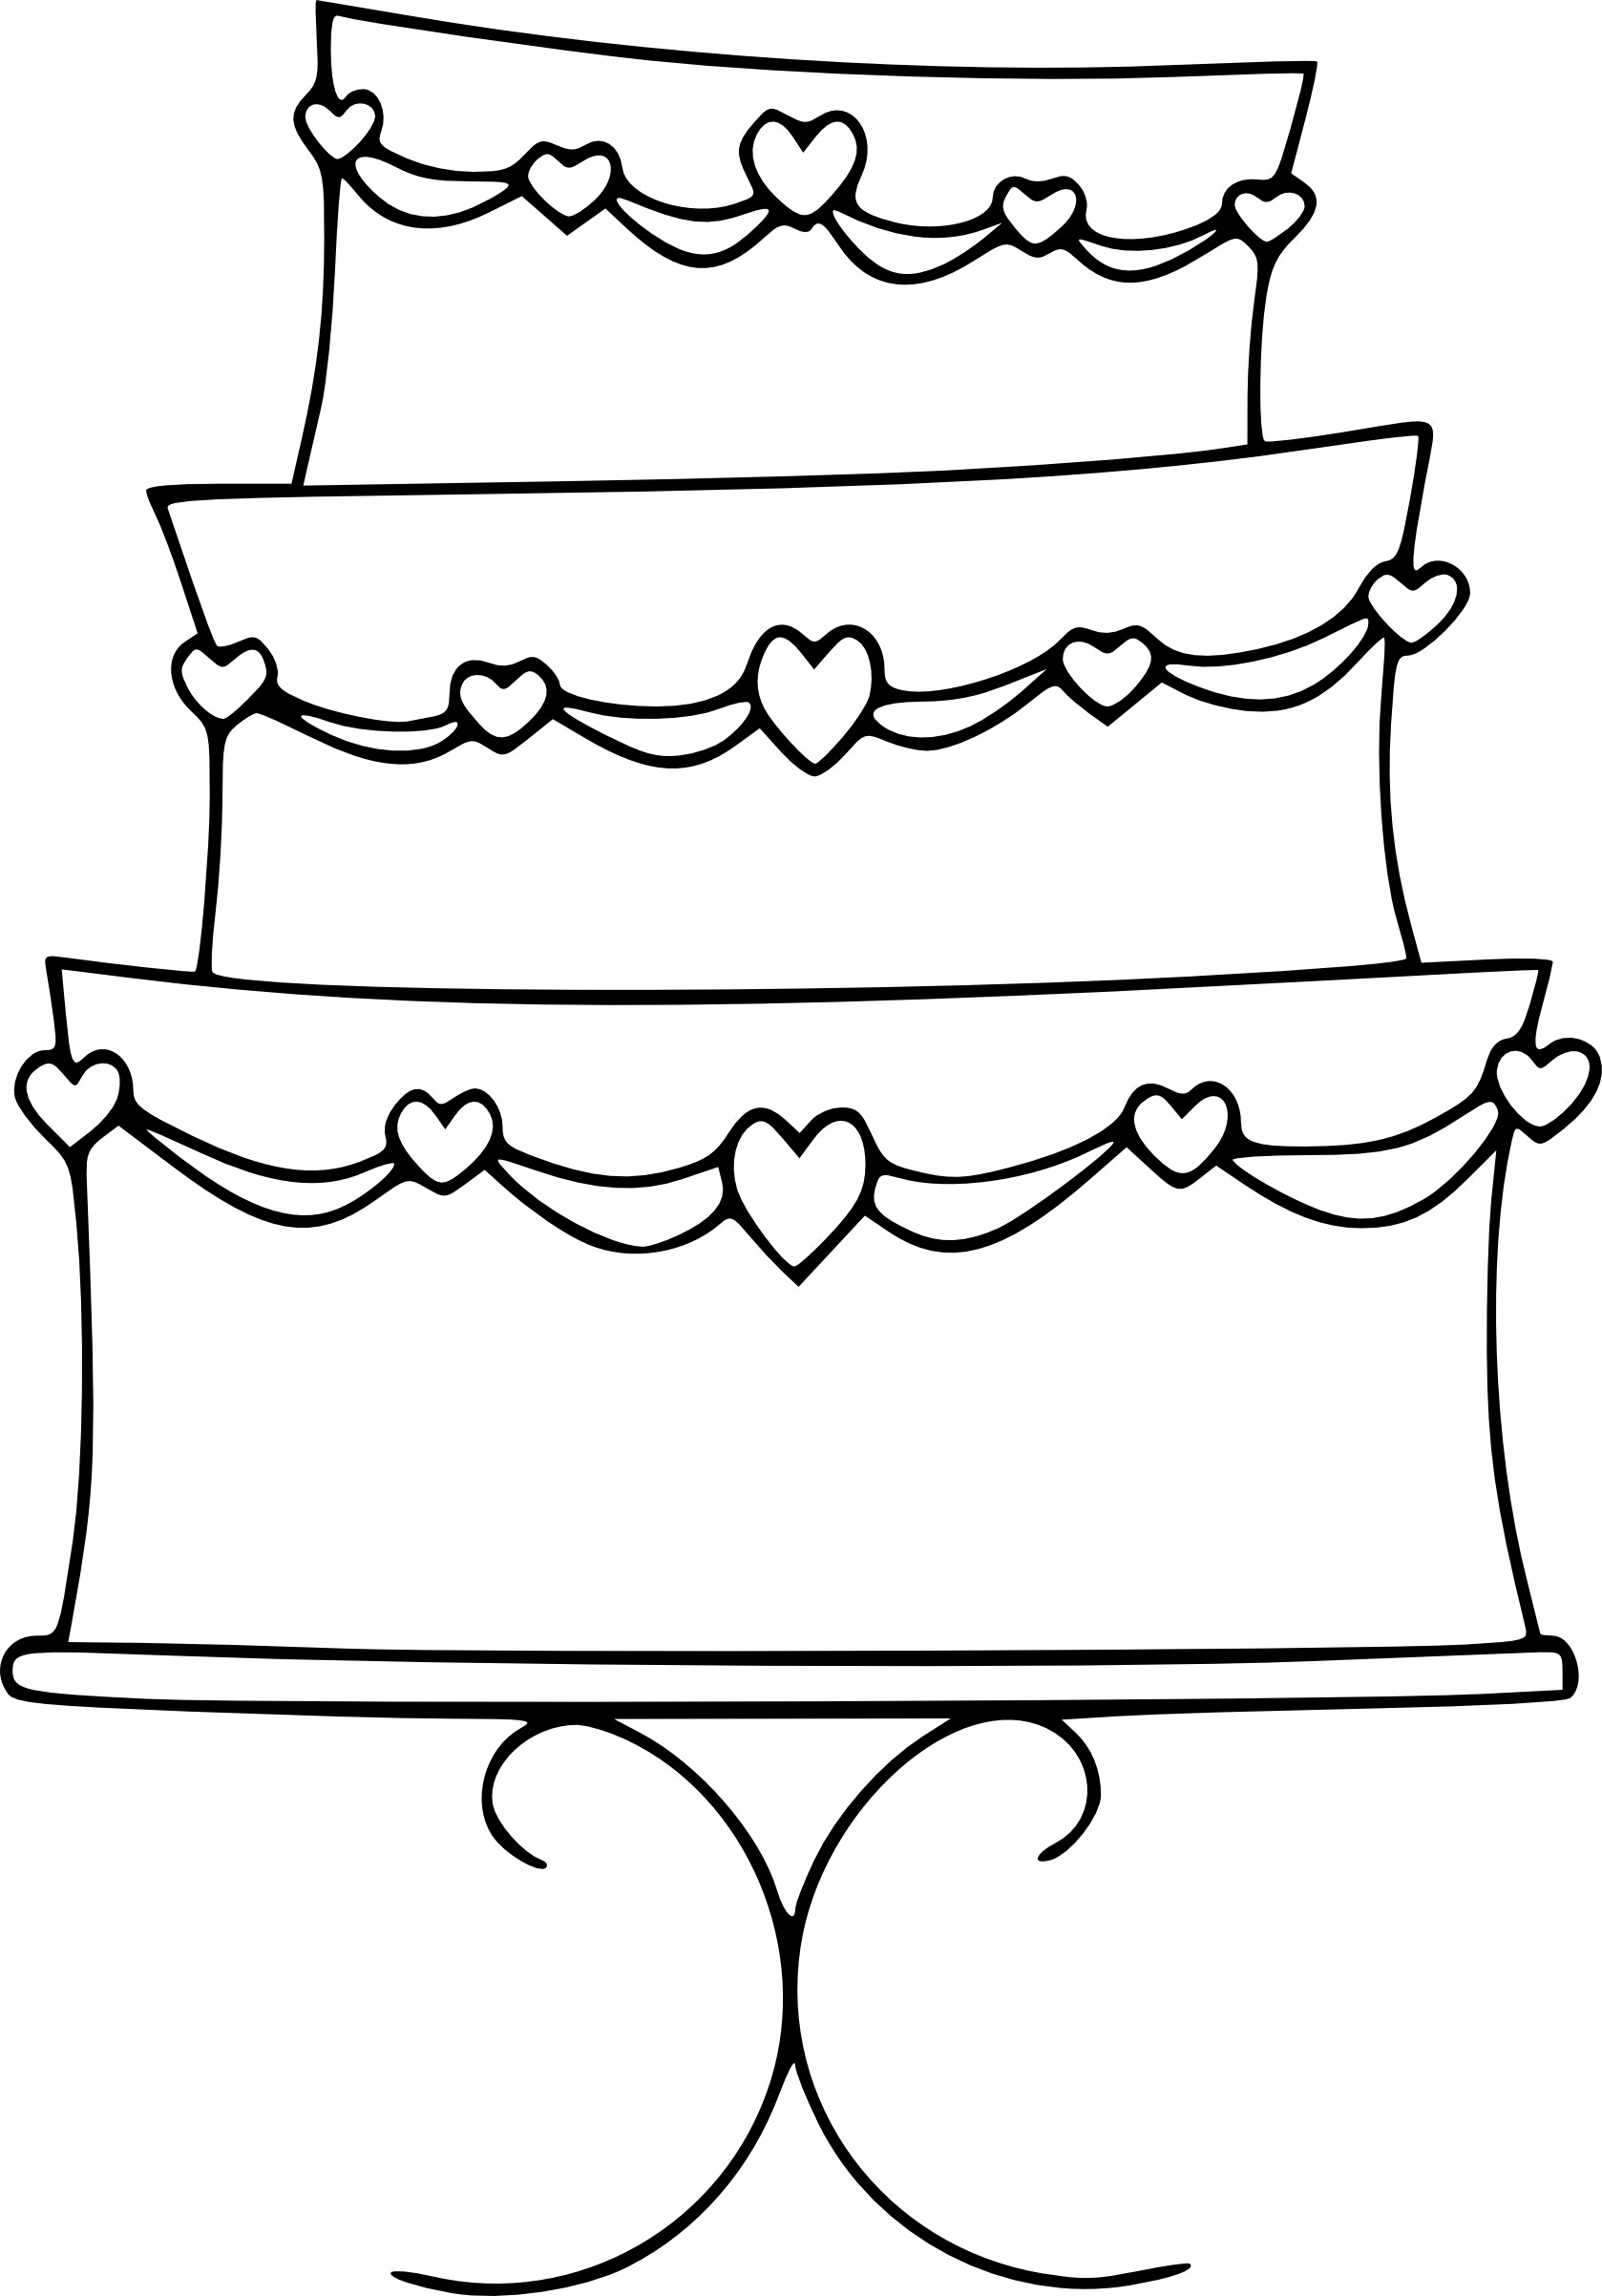 Wedding clipart outline Free Free Clip For Cupcake